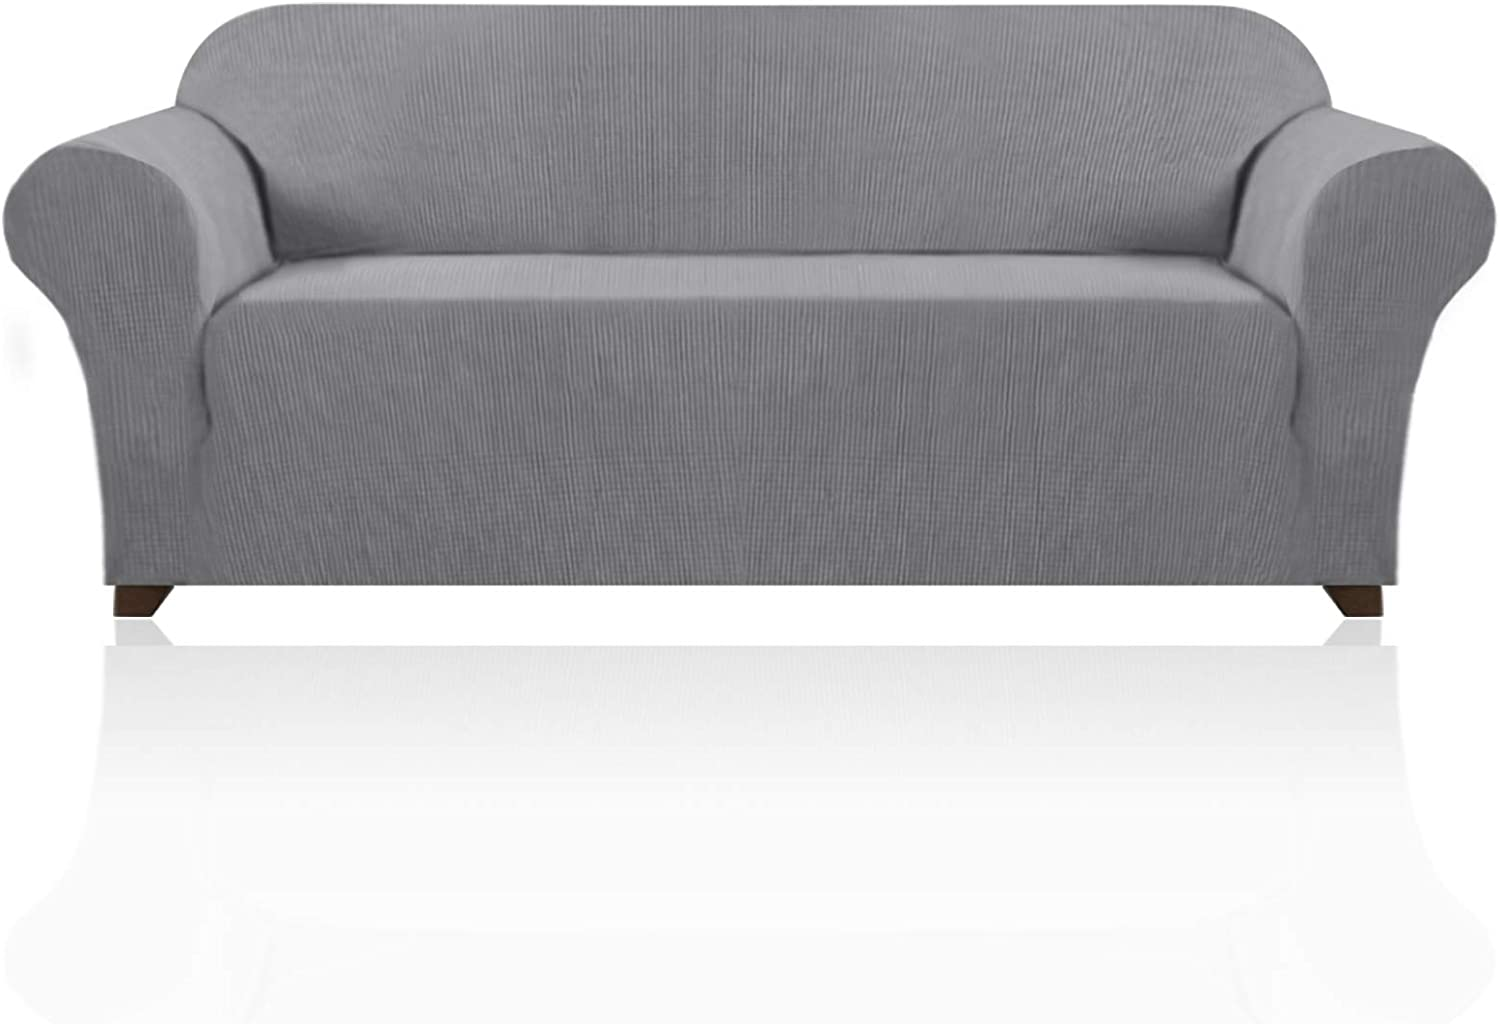 Stretch Sofa Slipcover 1 Piece Sofa Cover for 3 Cushion Couch Furniture Protector/Cover Couch with Elastic Bottom Soft and Durable Sofa Cover Pet Protector (Sofa, Dove)